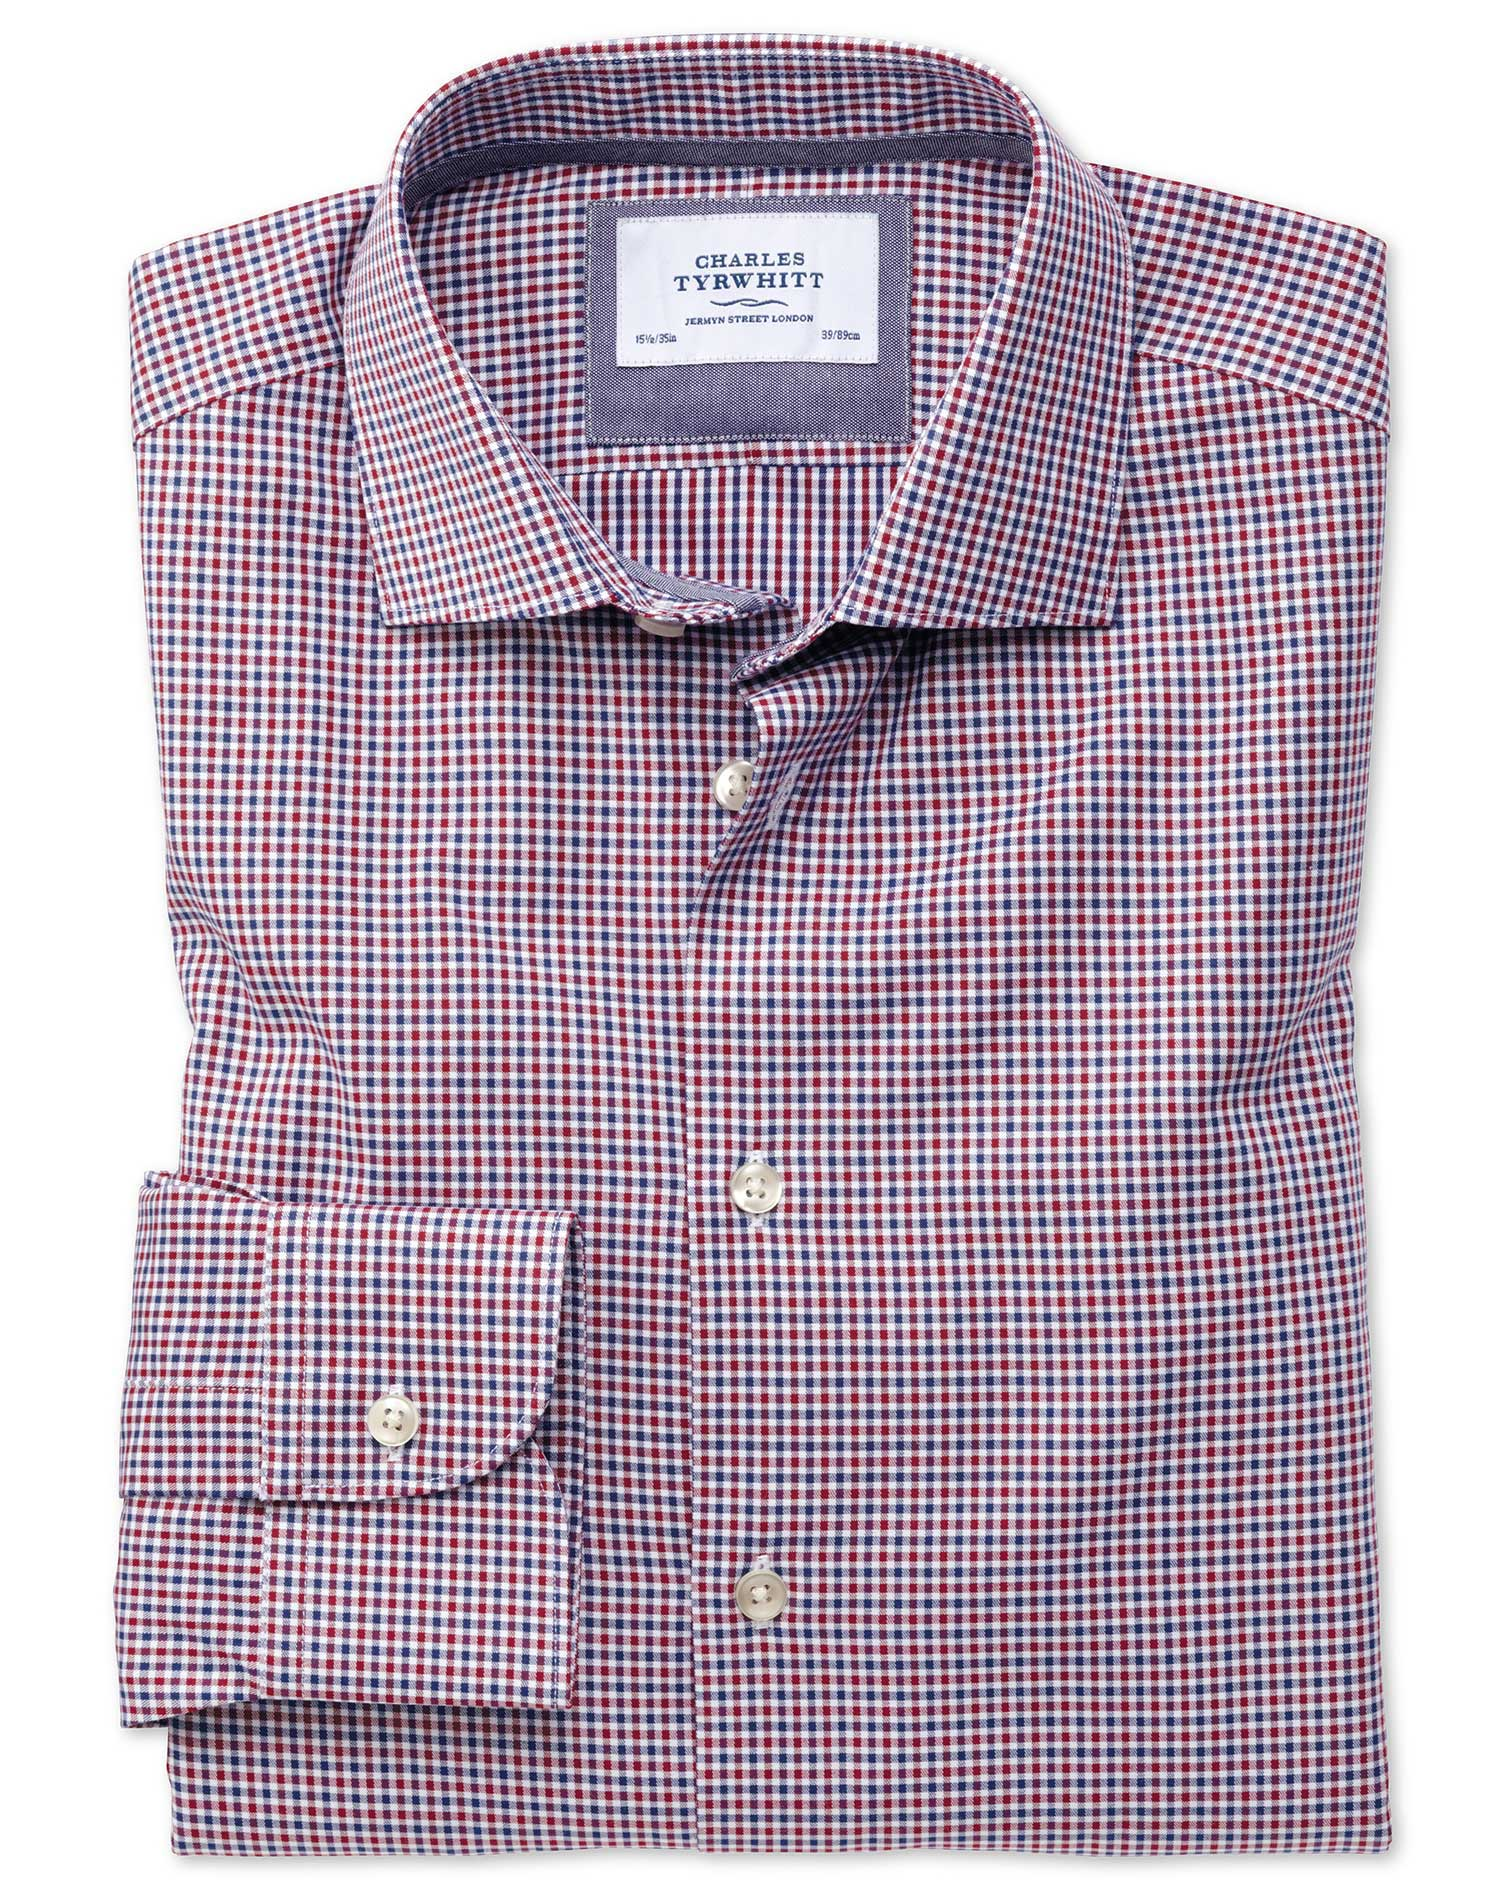 Slim Fit Semi-Cutaway Business Casual Gingham Red and Navy Cotton Formal Shirt Single Cuff Size 15/3